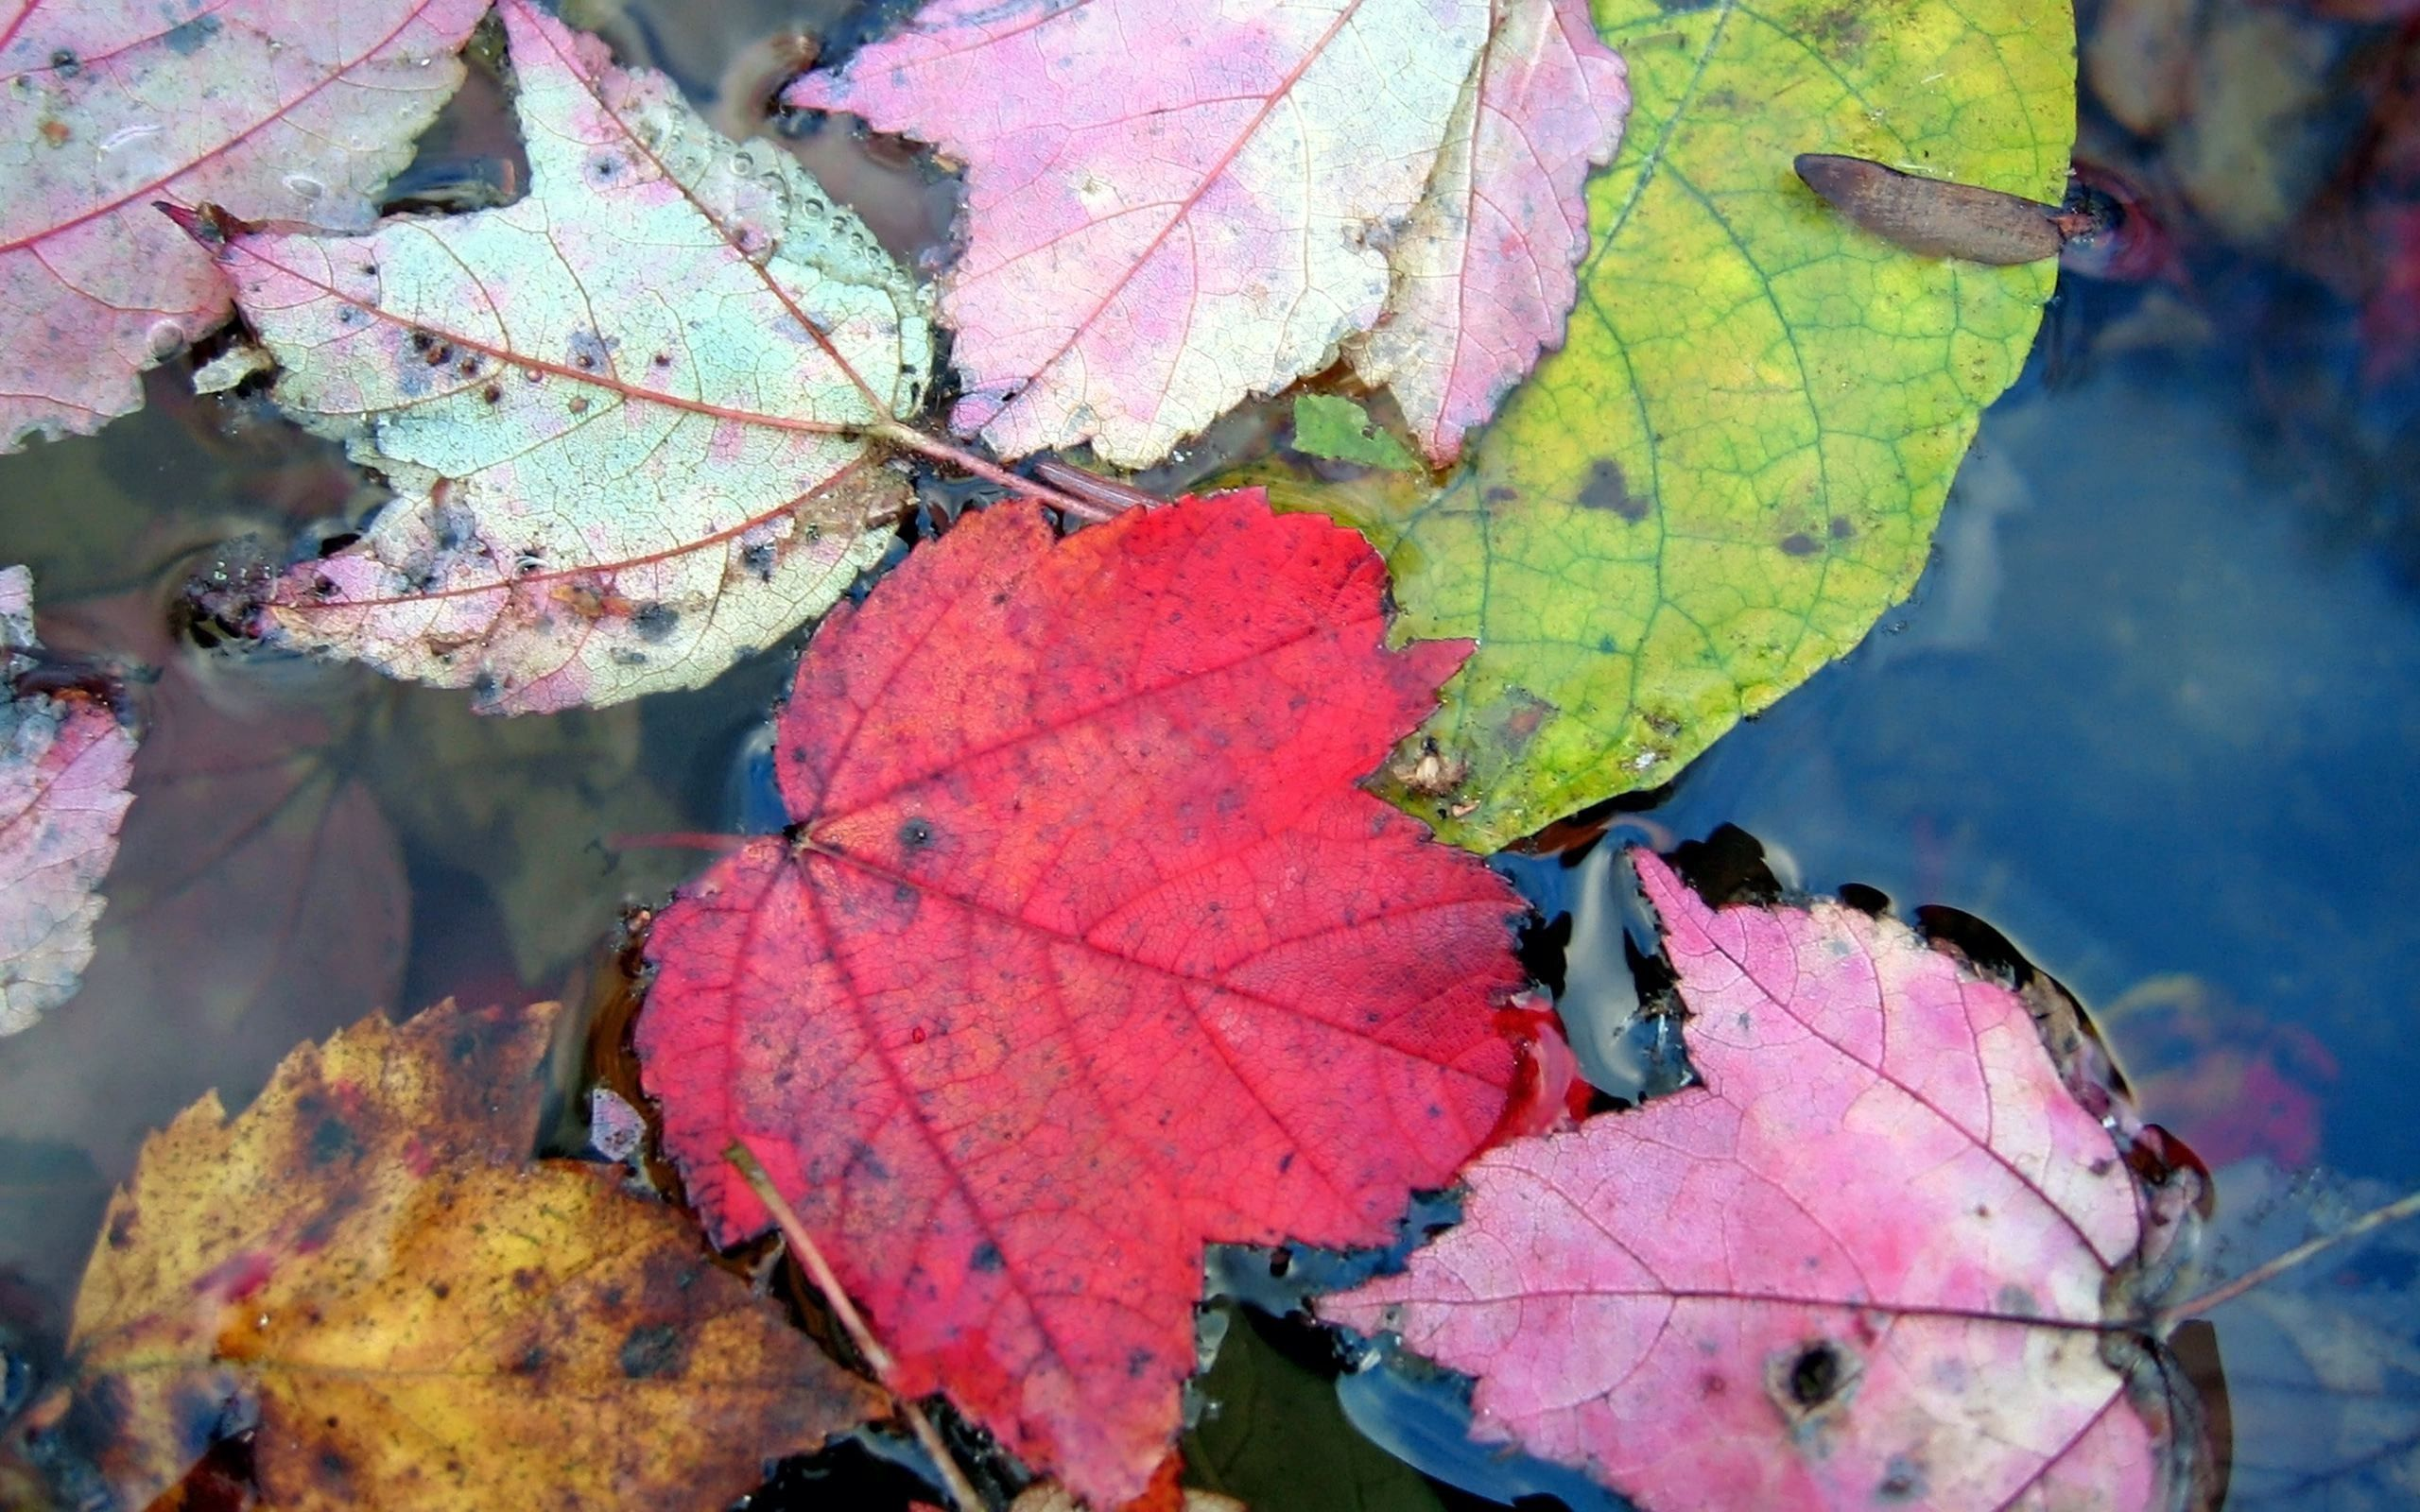 113826 download wallpaper Macro, Leaves, Autumn, Multicolored, Motley, Water, To Swim, Swim screensavers and pictures for free